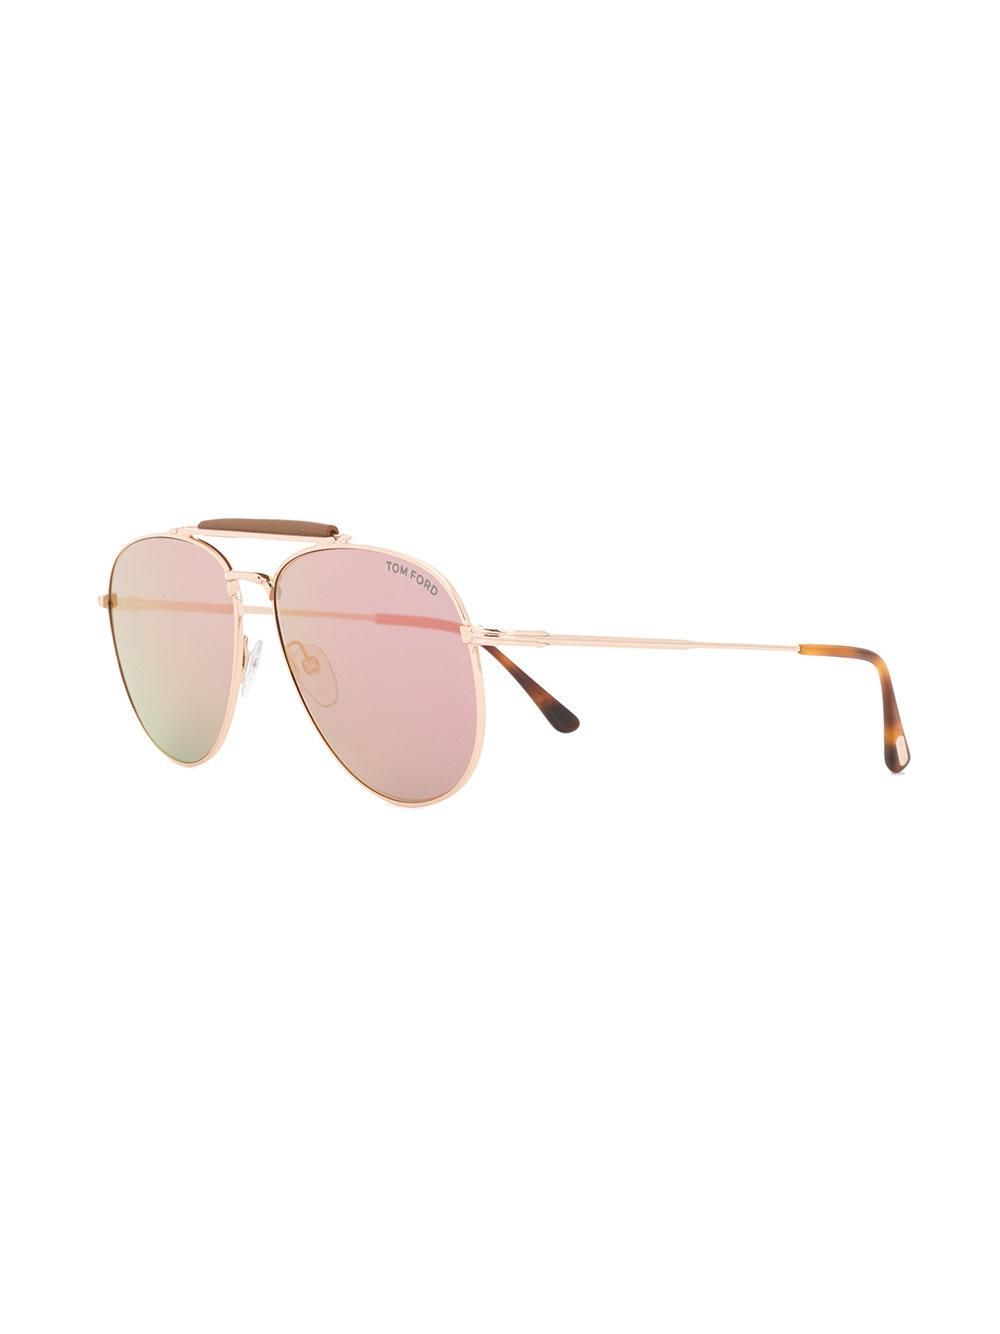 Tom Ford Gradient Aviator Sunglasses in Metallic